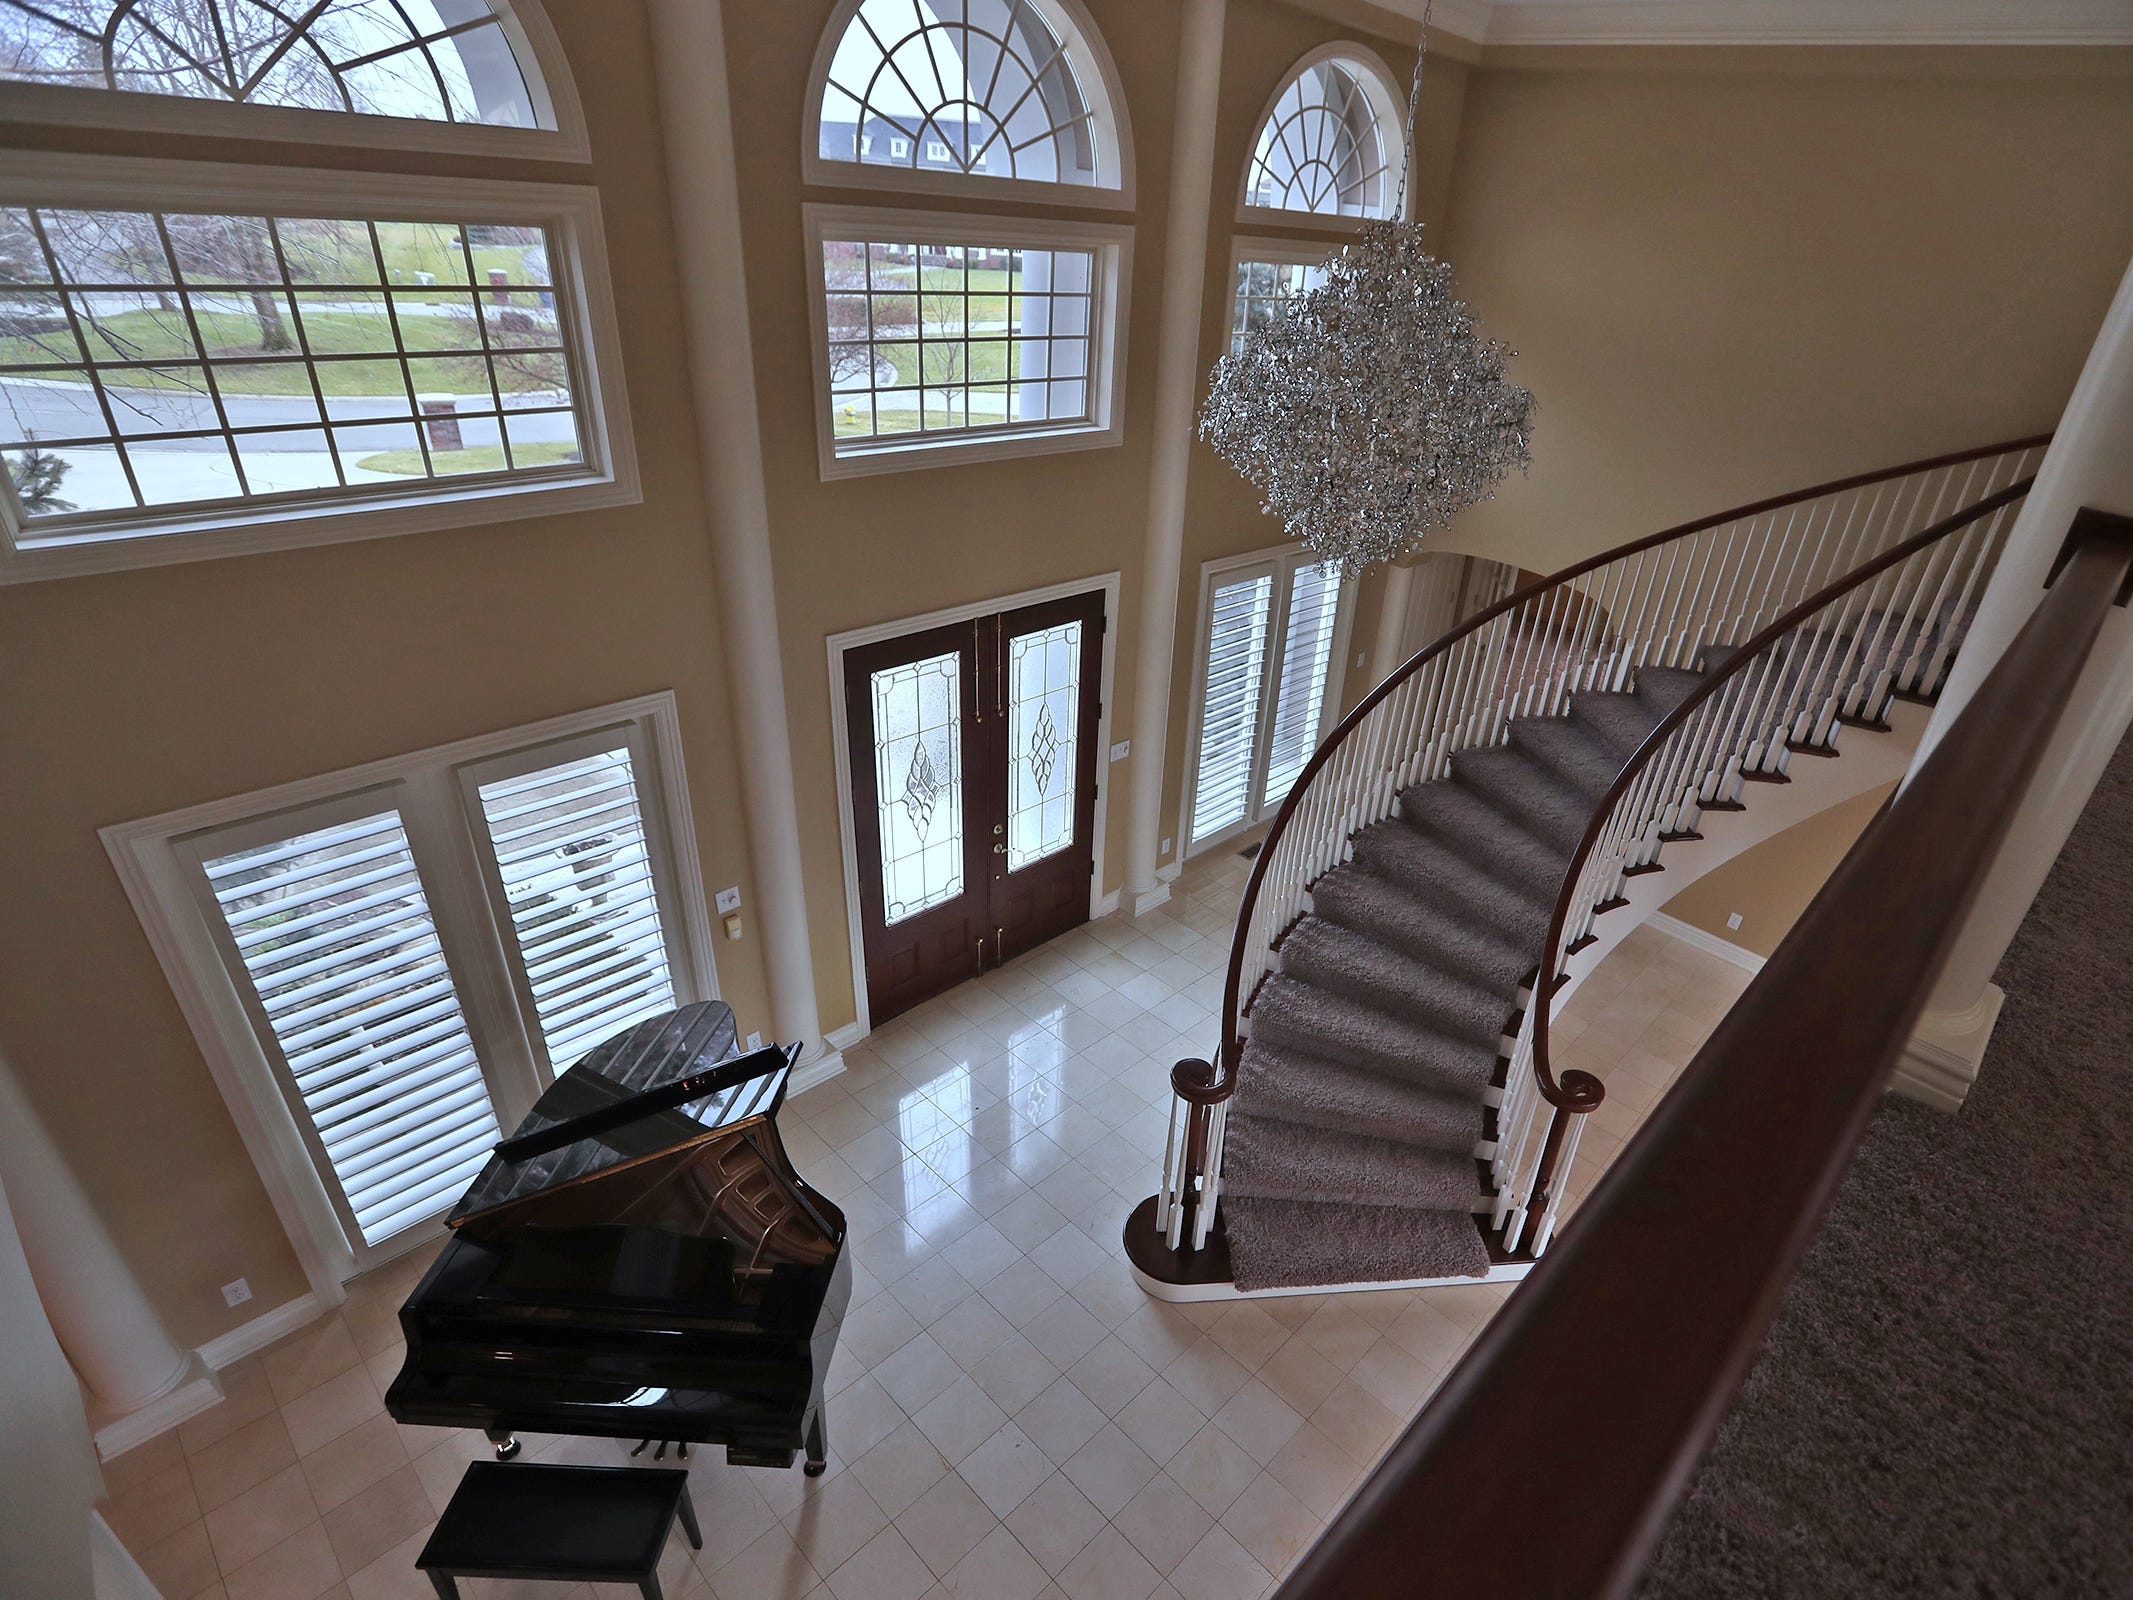 This is a look down into the two-story foyer area in the home at 1270 Laurelwood Ct. in Carmel, Friday, Dec. 28, 2018.